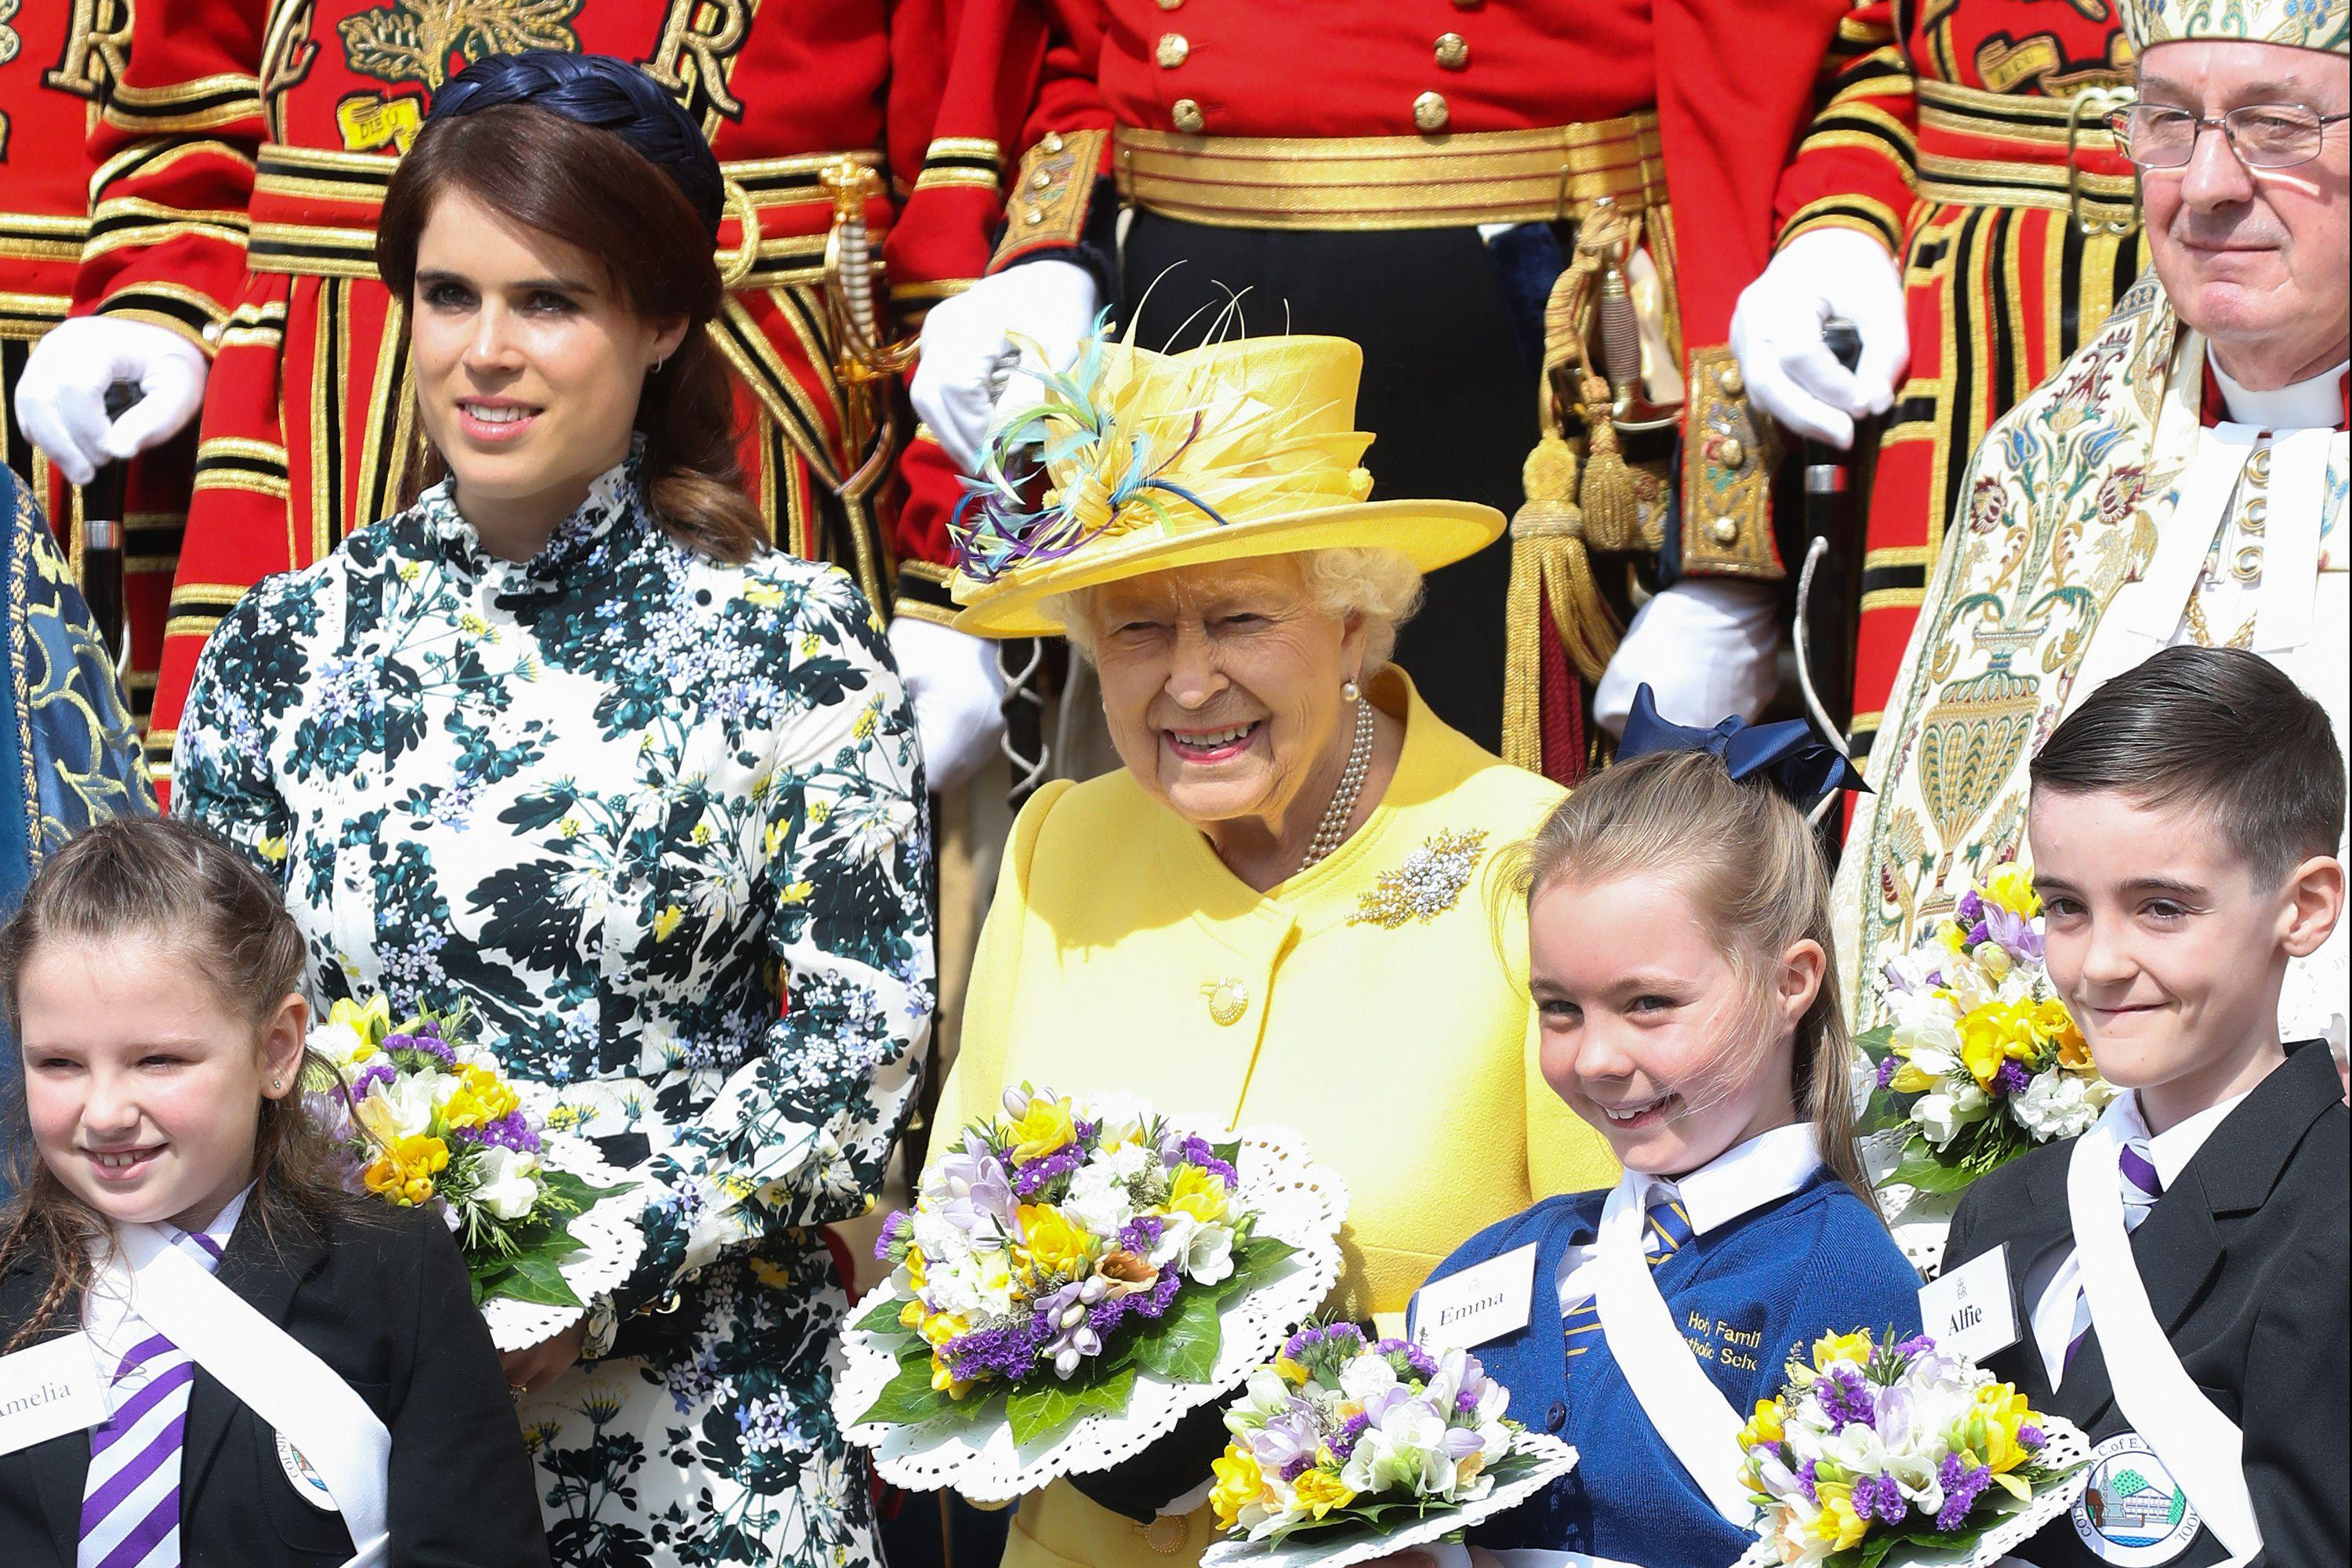 The Queen & Princess Eugenie Hand Out Bags of Money for Maundy Thursday